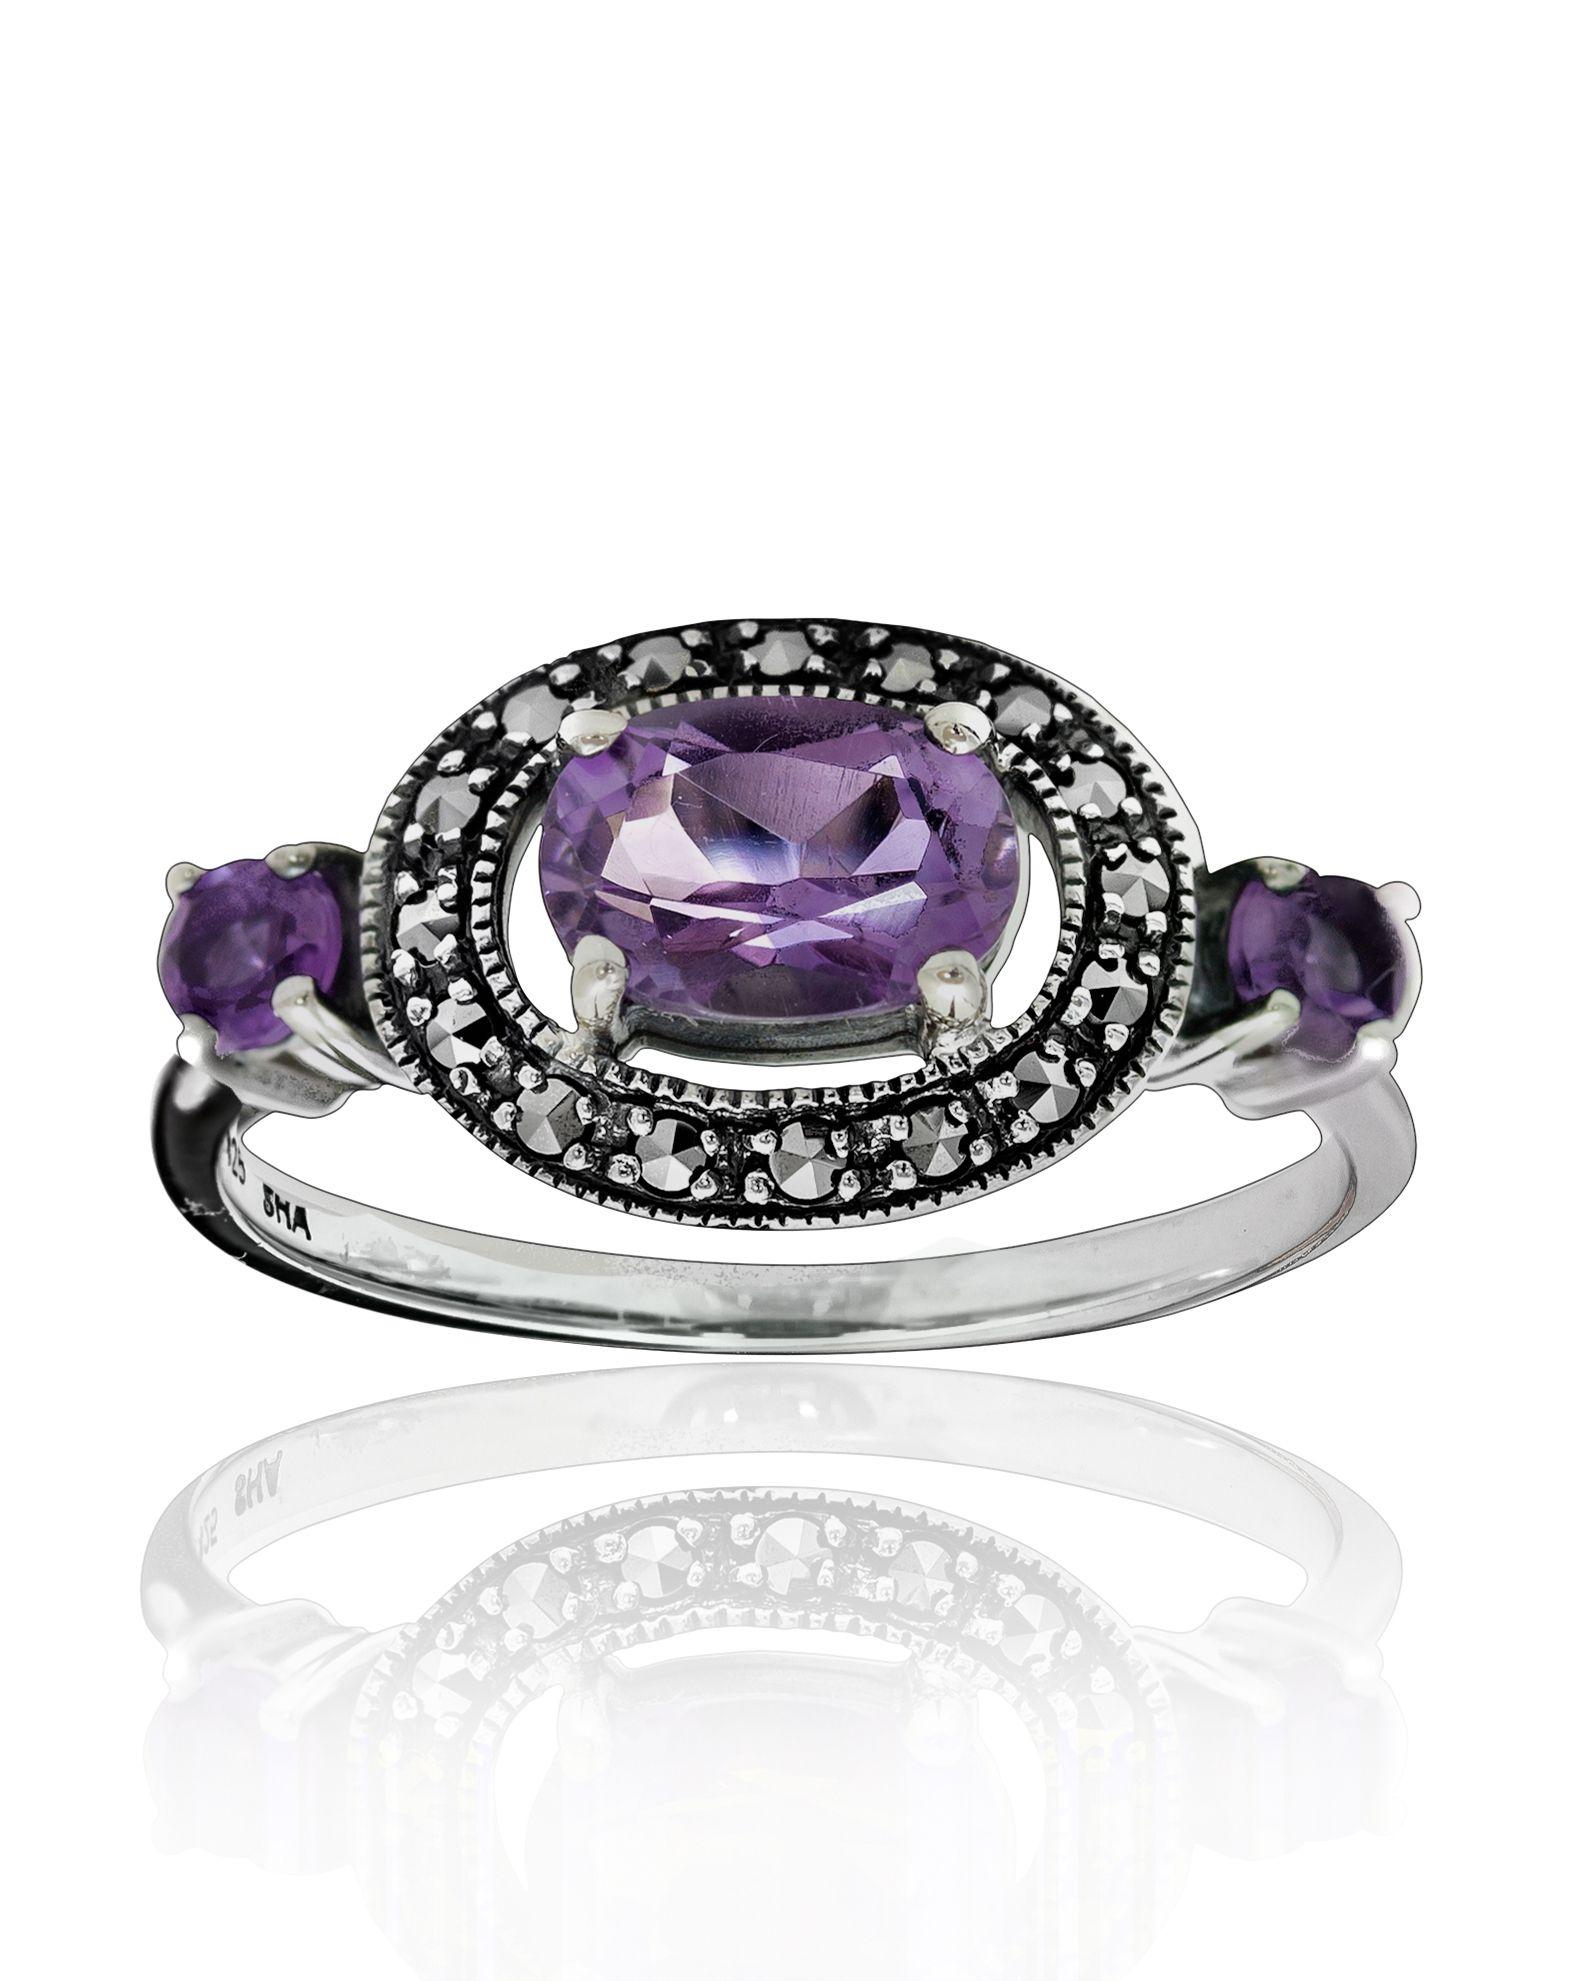 Marcasite, Amethyst, Ring